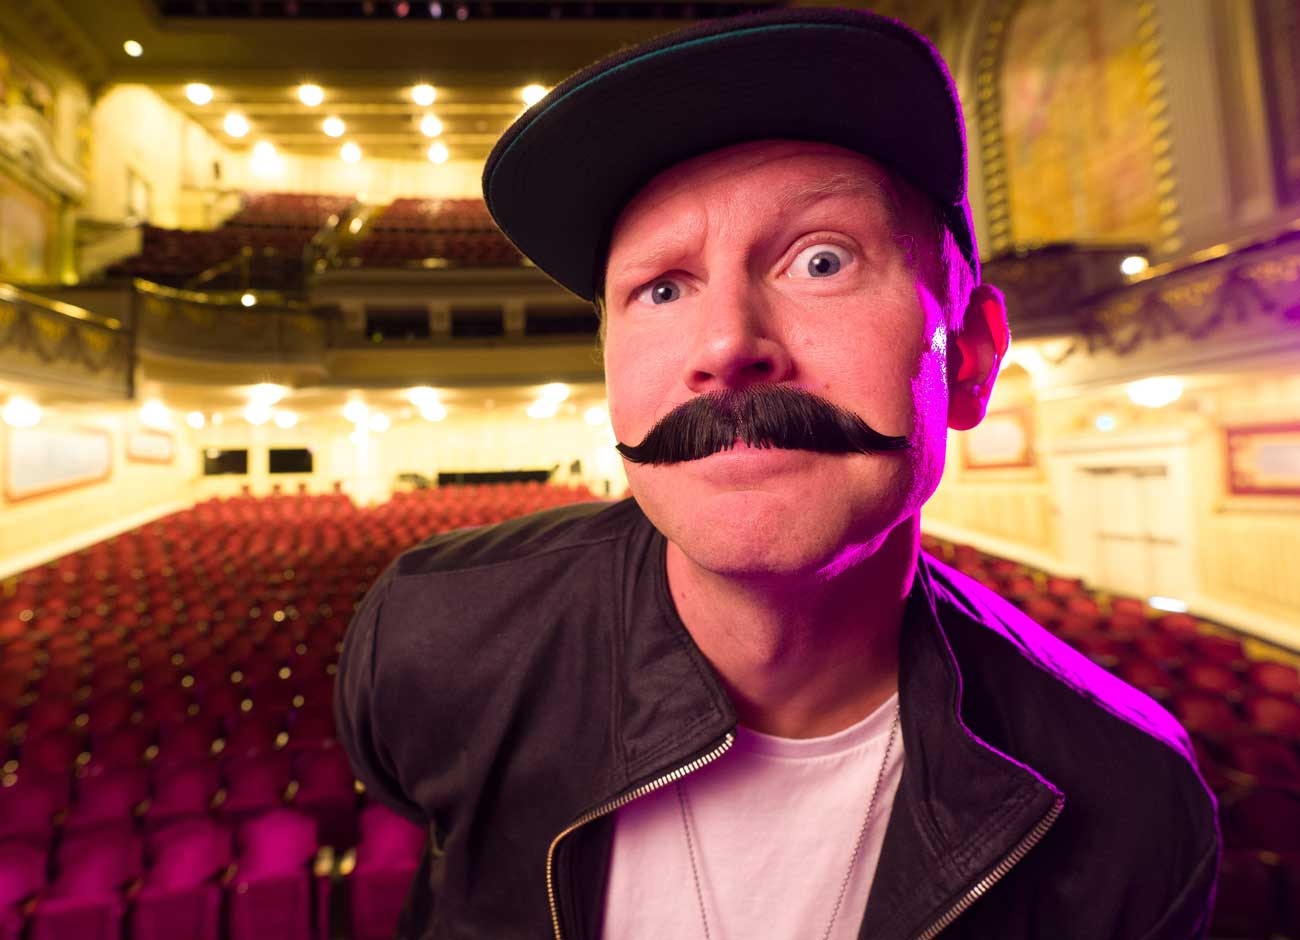 a man sits in an empty theater. he is wearing a fake mustache and amused expression